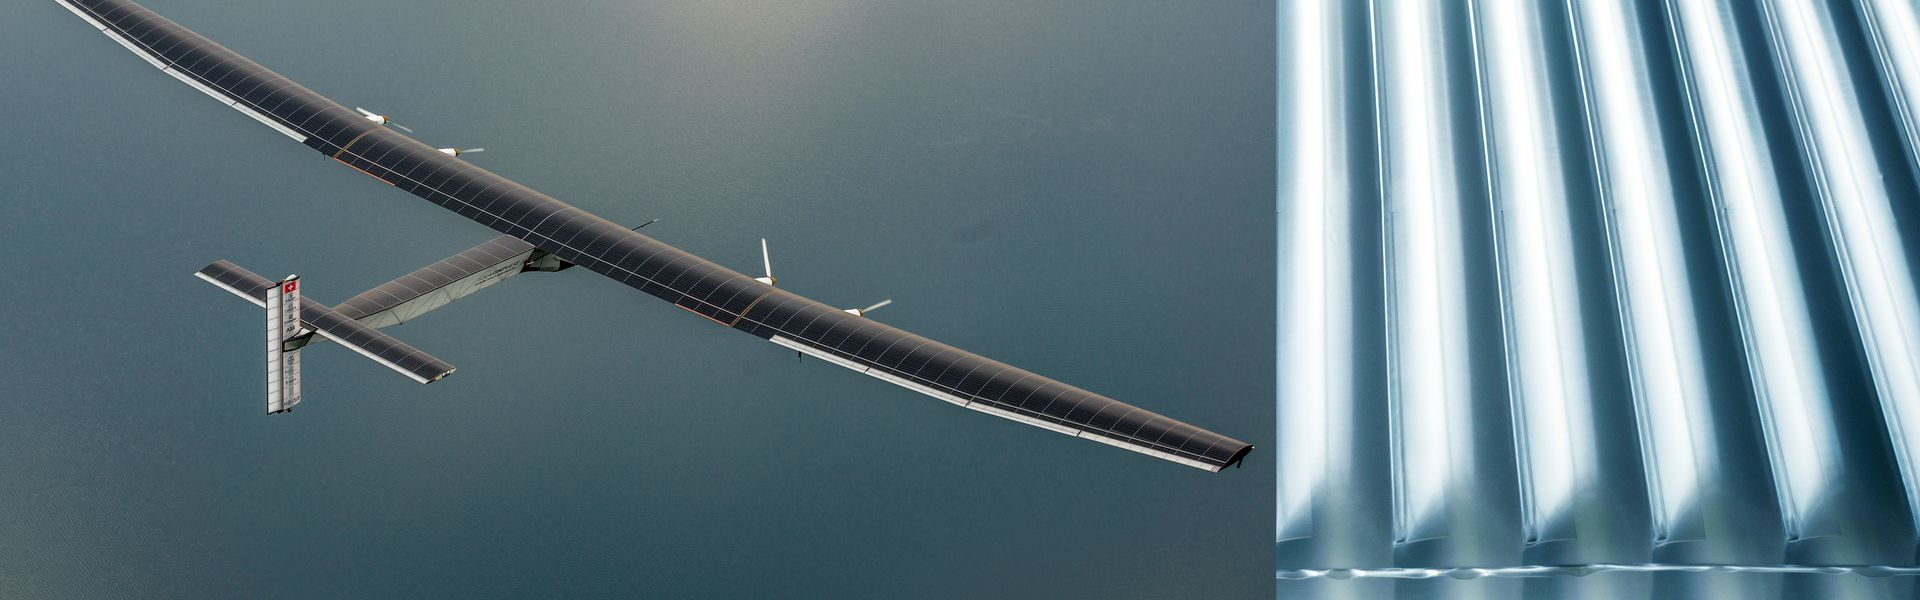 Lantal's contribution to the Solar Impulse project